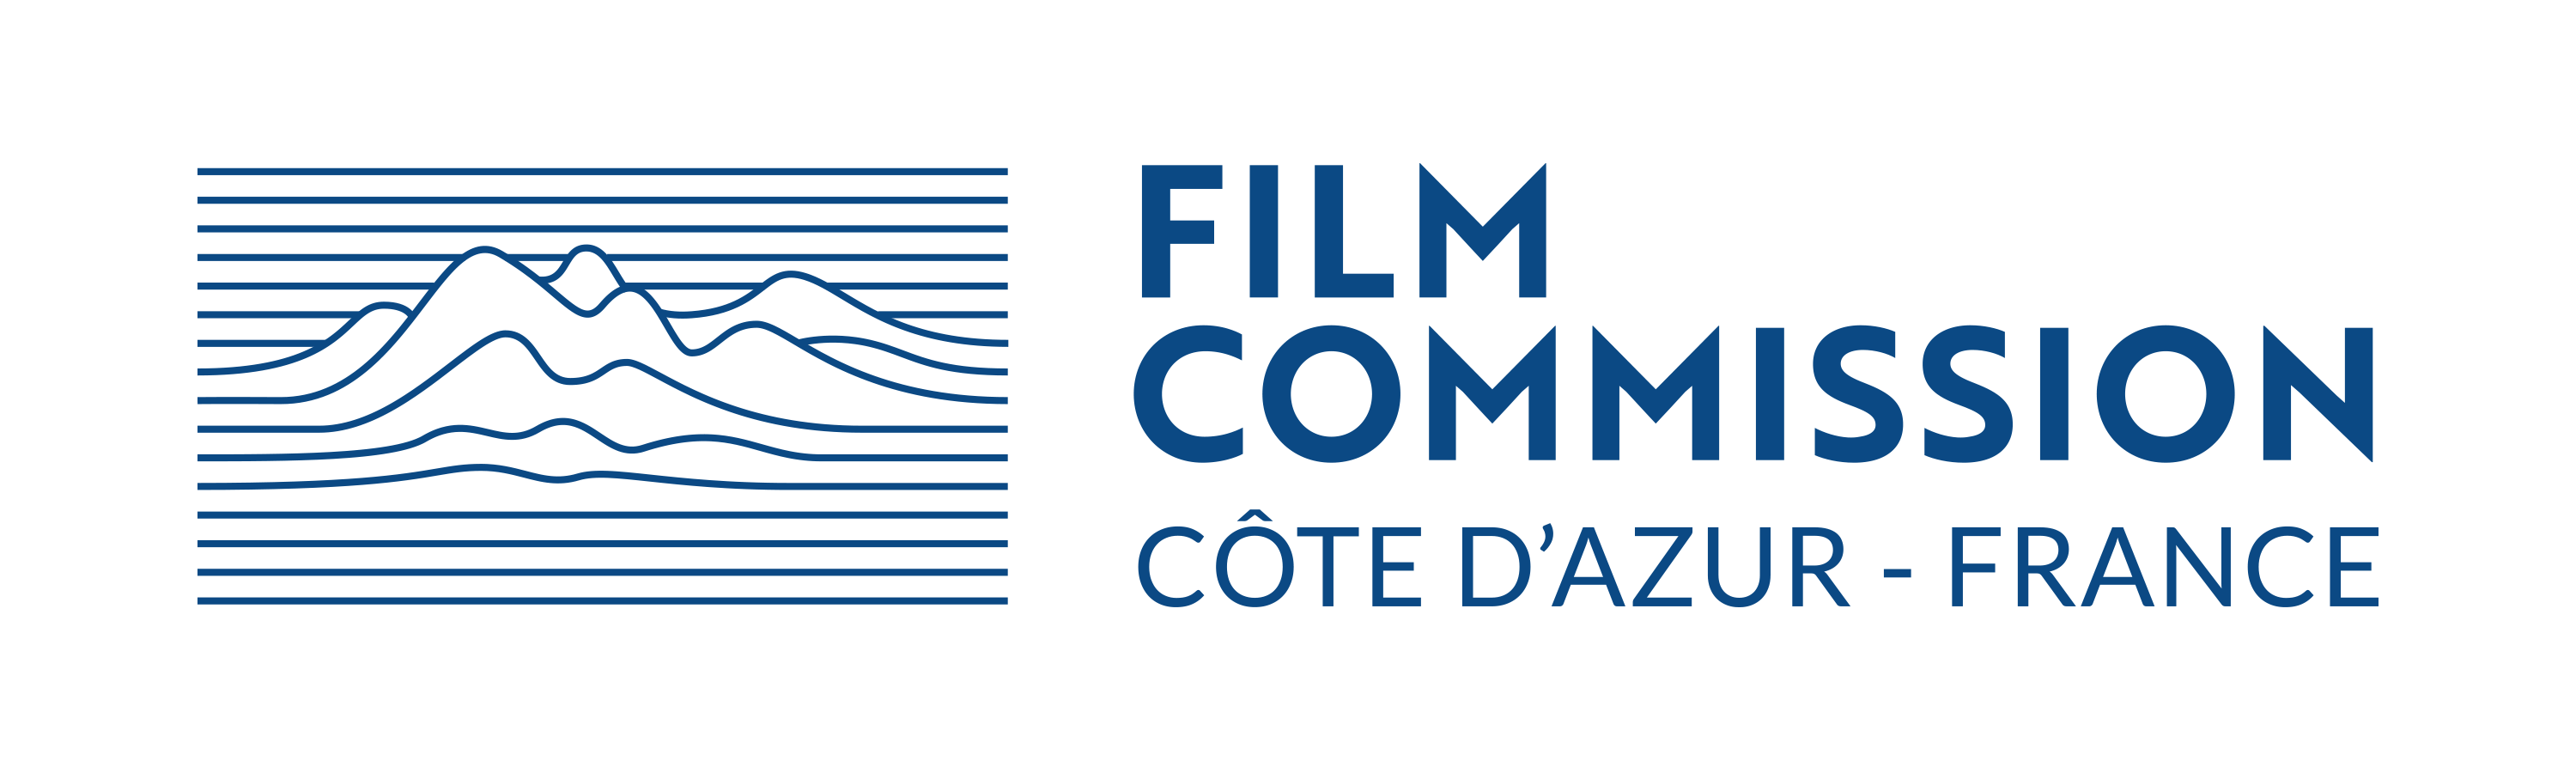 Film Commission Logo - Blue